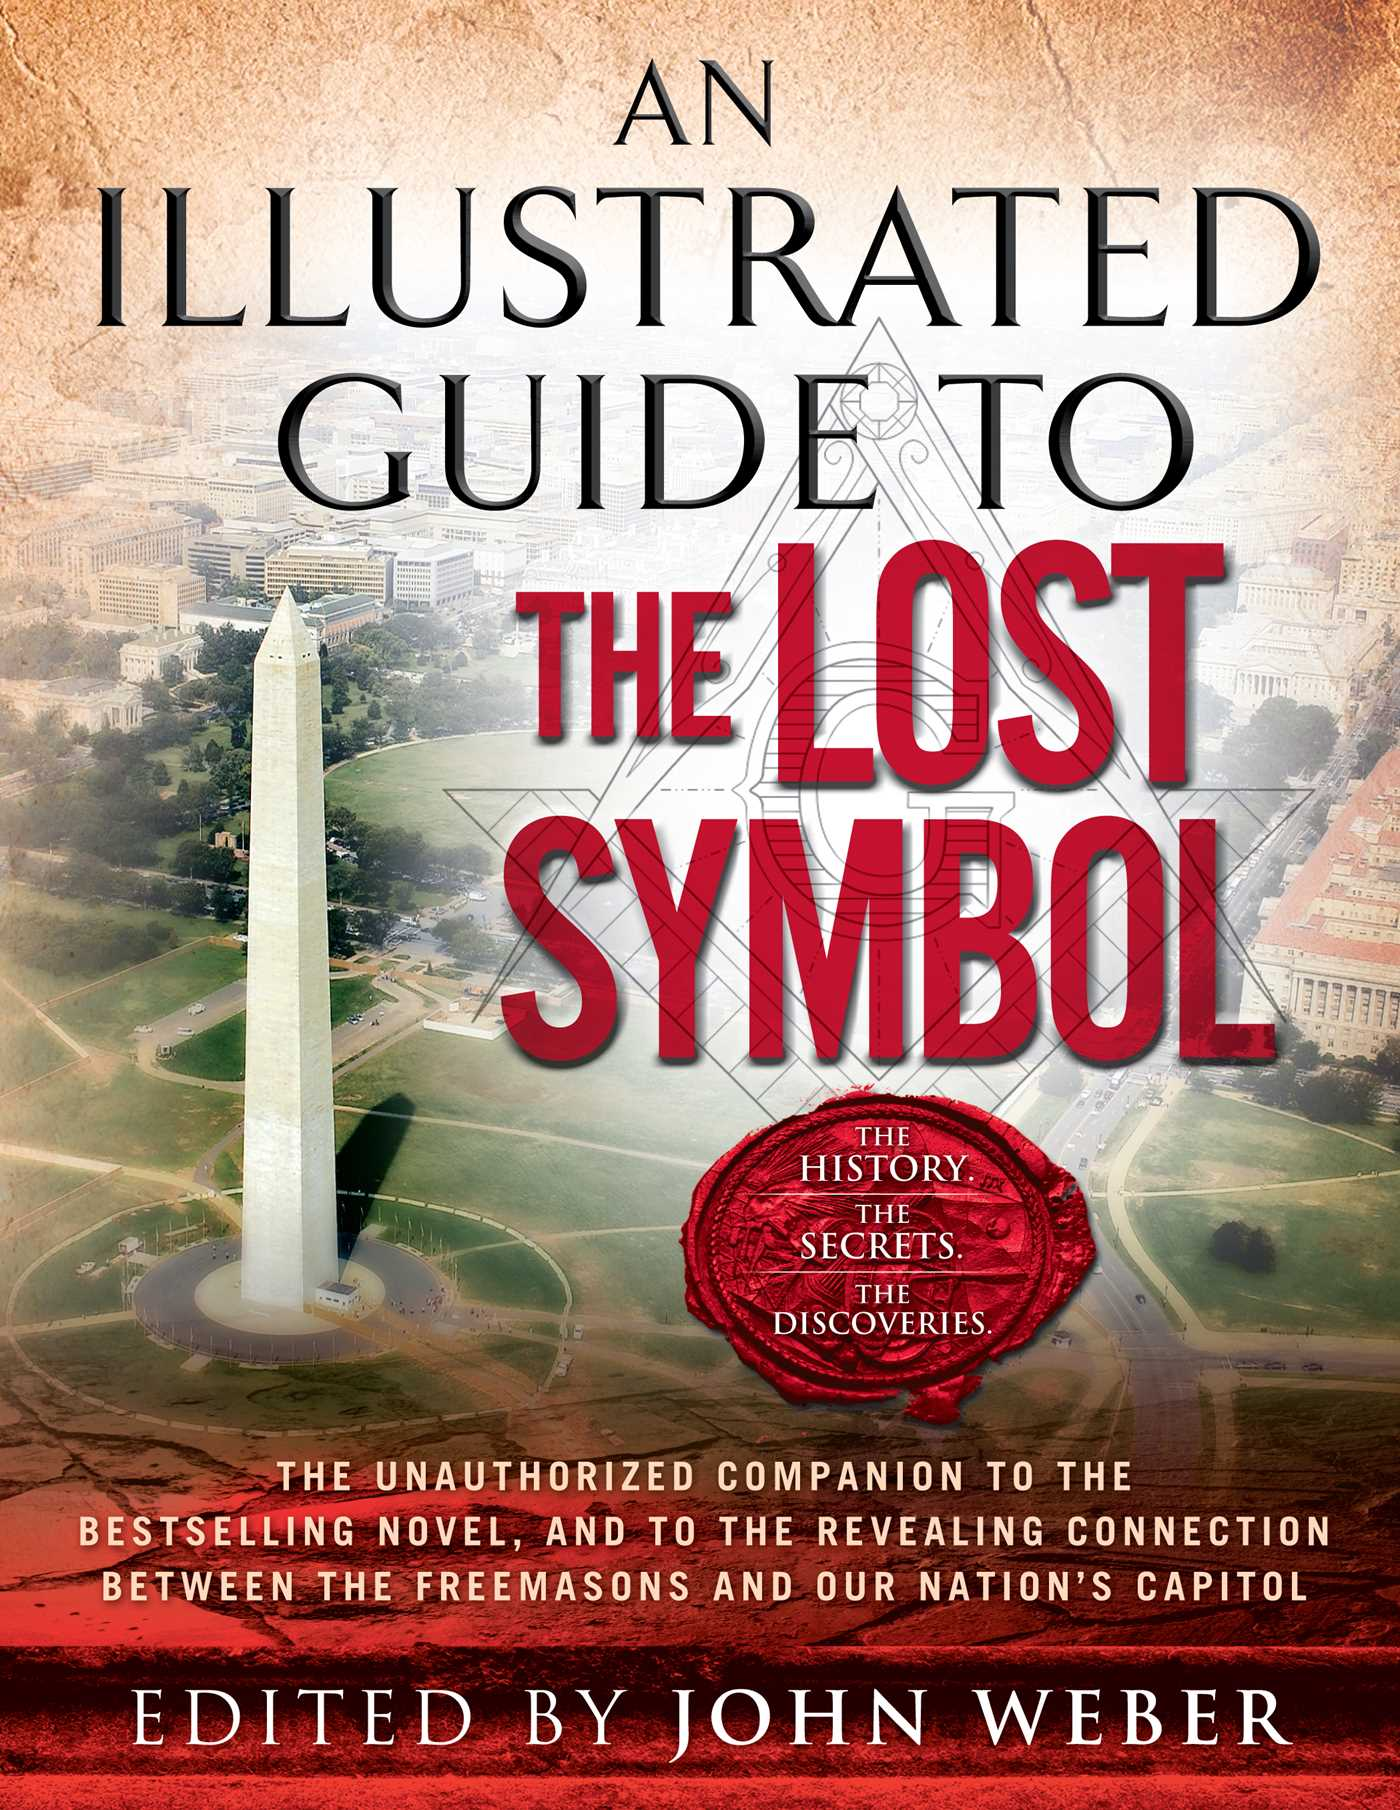 An illustrated guide to the lost symbol ebook by john weber an illustrated guide to the lost symbol 9781439180655 hr biocorpaavc Images